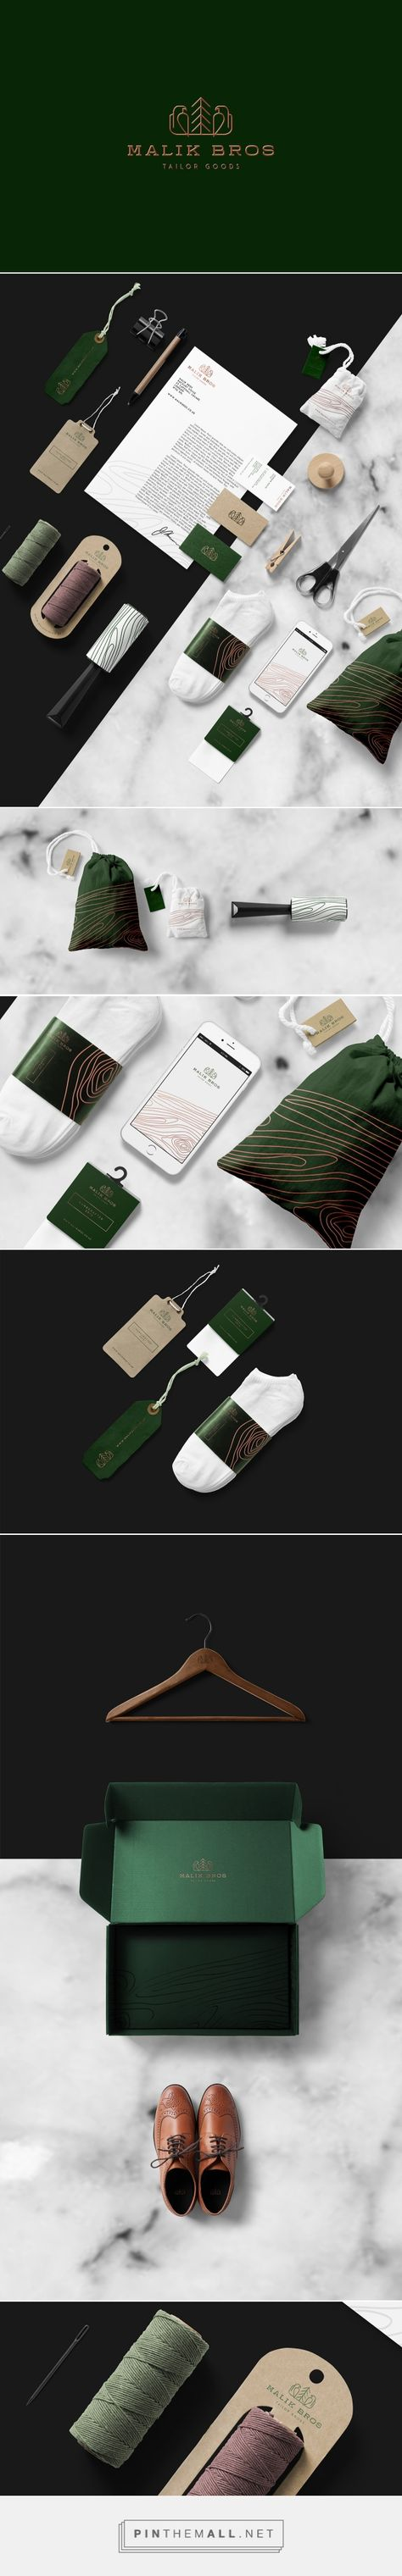 Art direction, branding and packaging for Malik Bros Tailor Goods on Behance by Sebastian Bednarek Warsaw, PL curated by Packaging Diva PD. Provides you with the finest hand-made, custom attire, tailored just for you.